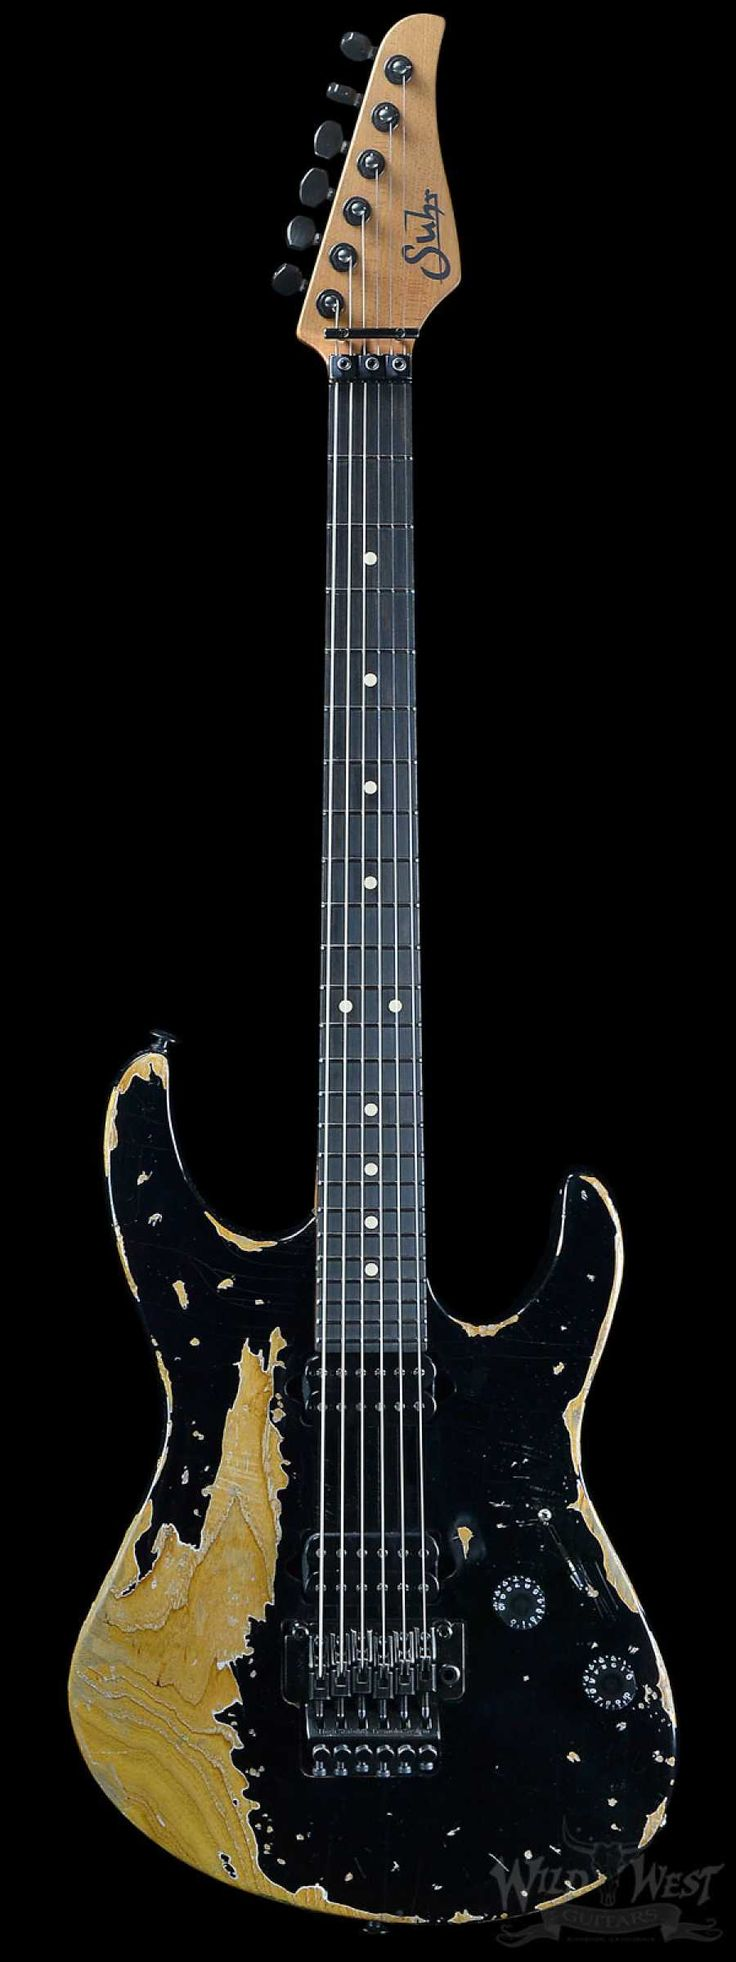 d6e5d1a03beba8b9b568849777d069a0 guitar rack music store 76 best instruments images on pinterest electric guitars  at gsmx.co